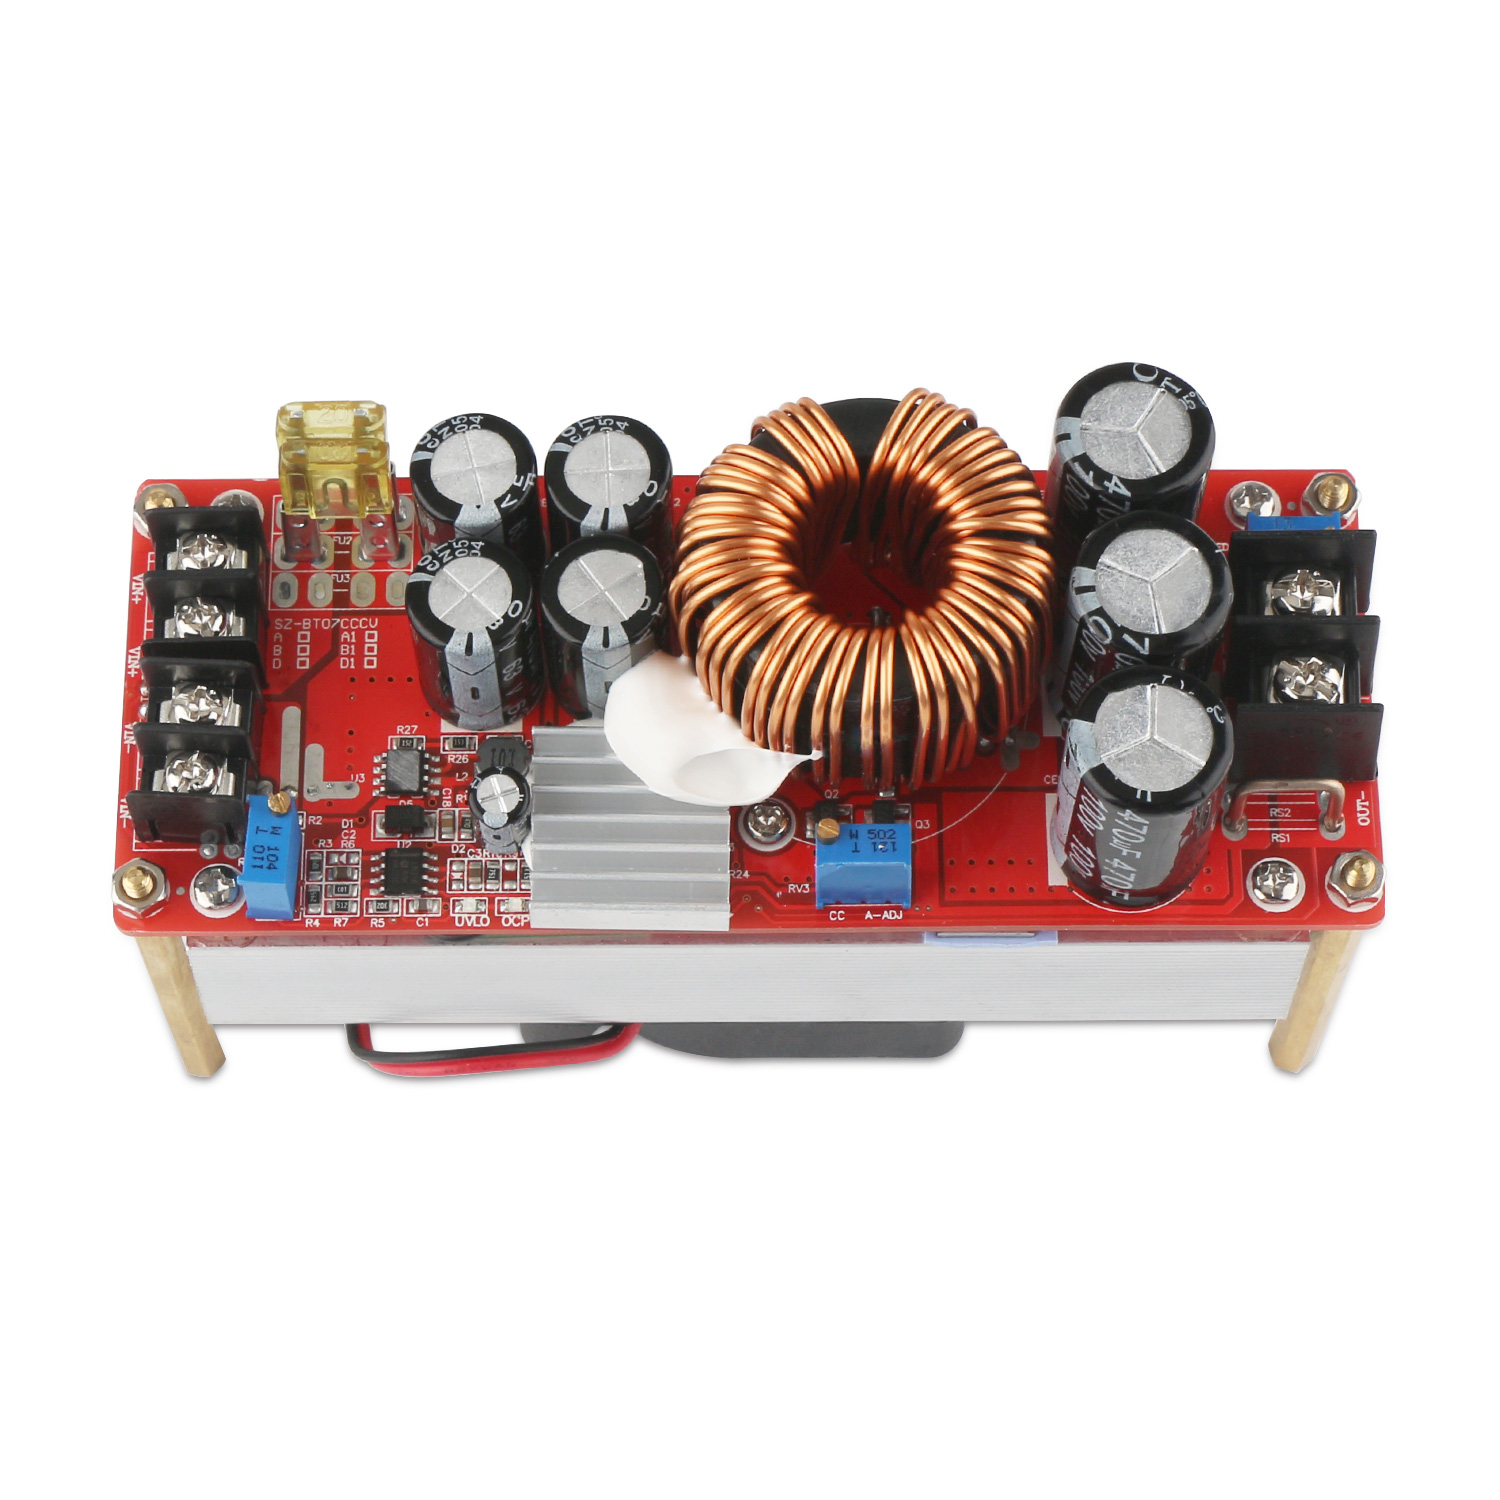 1500w Power Supply Module Dc1060v To 1290v 20a Converter Regulator Circuit Can Adjustable Output Voltage Electronic